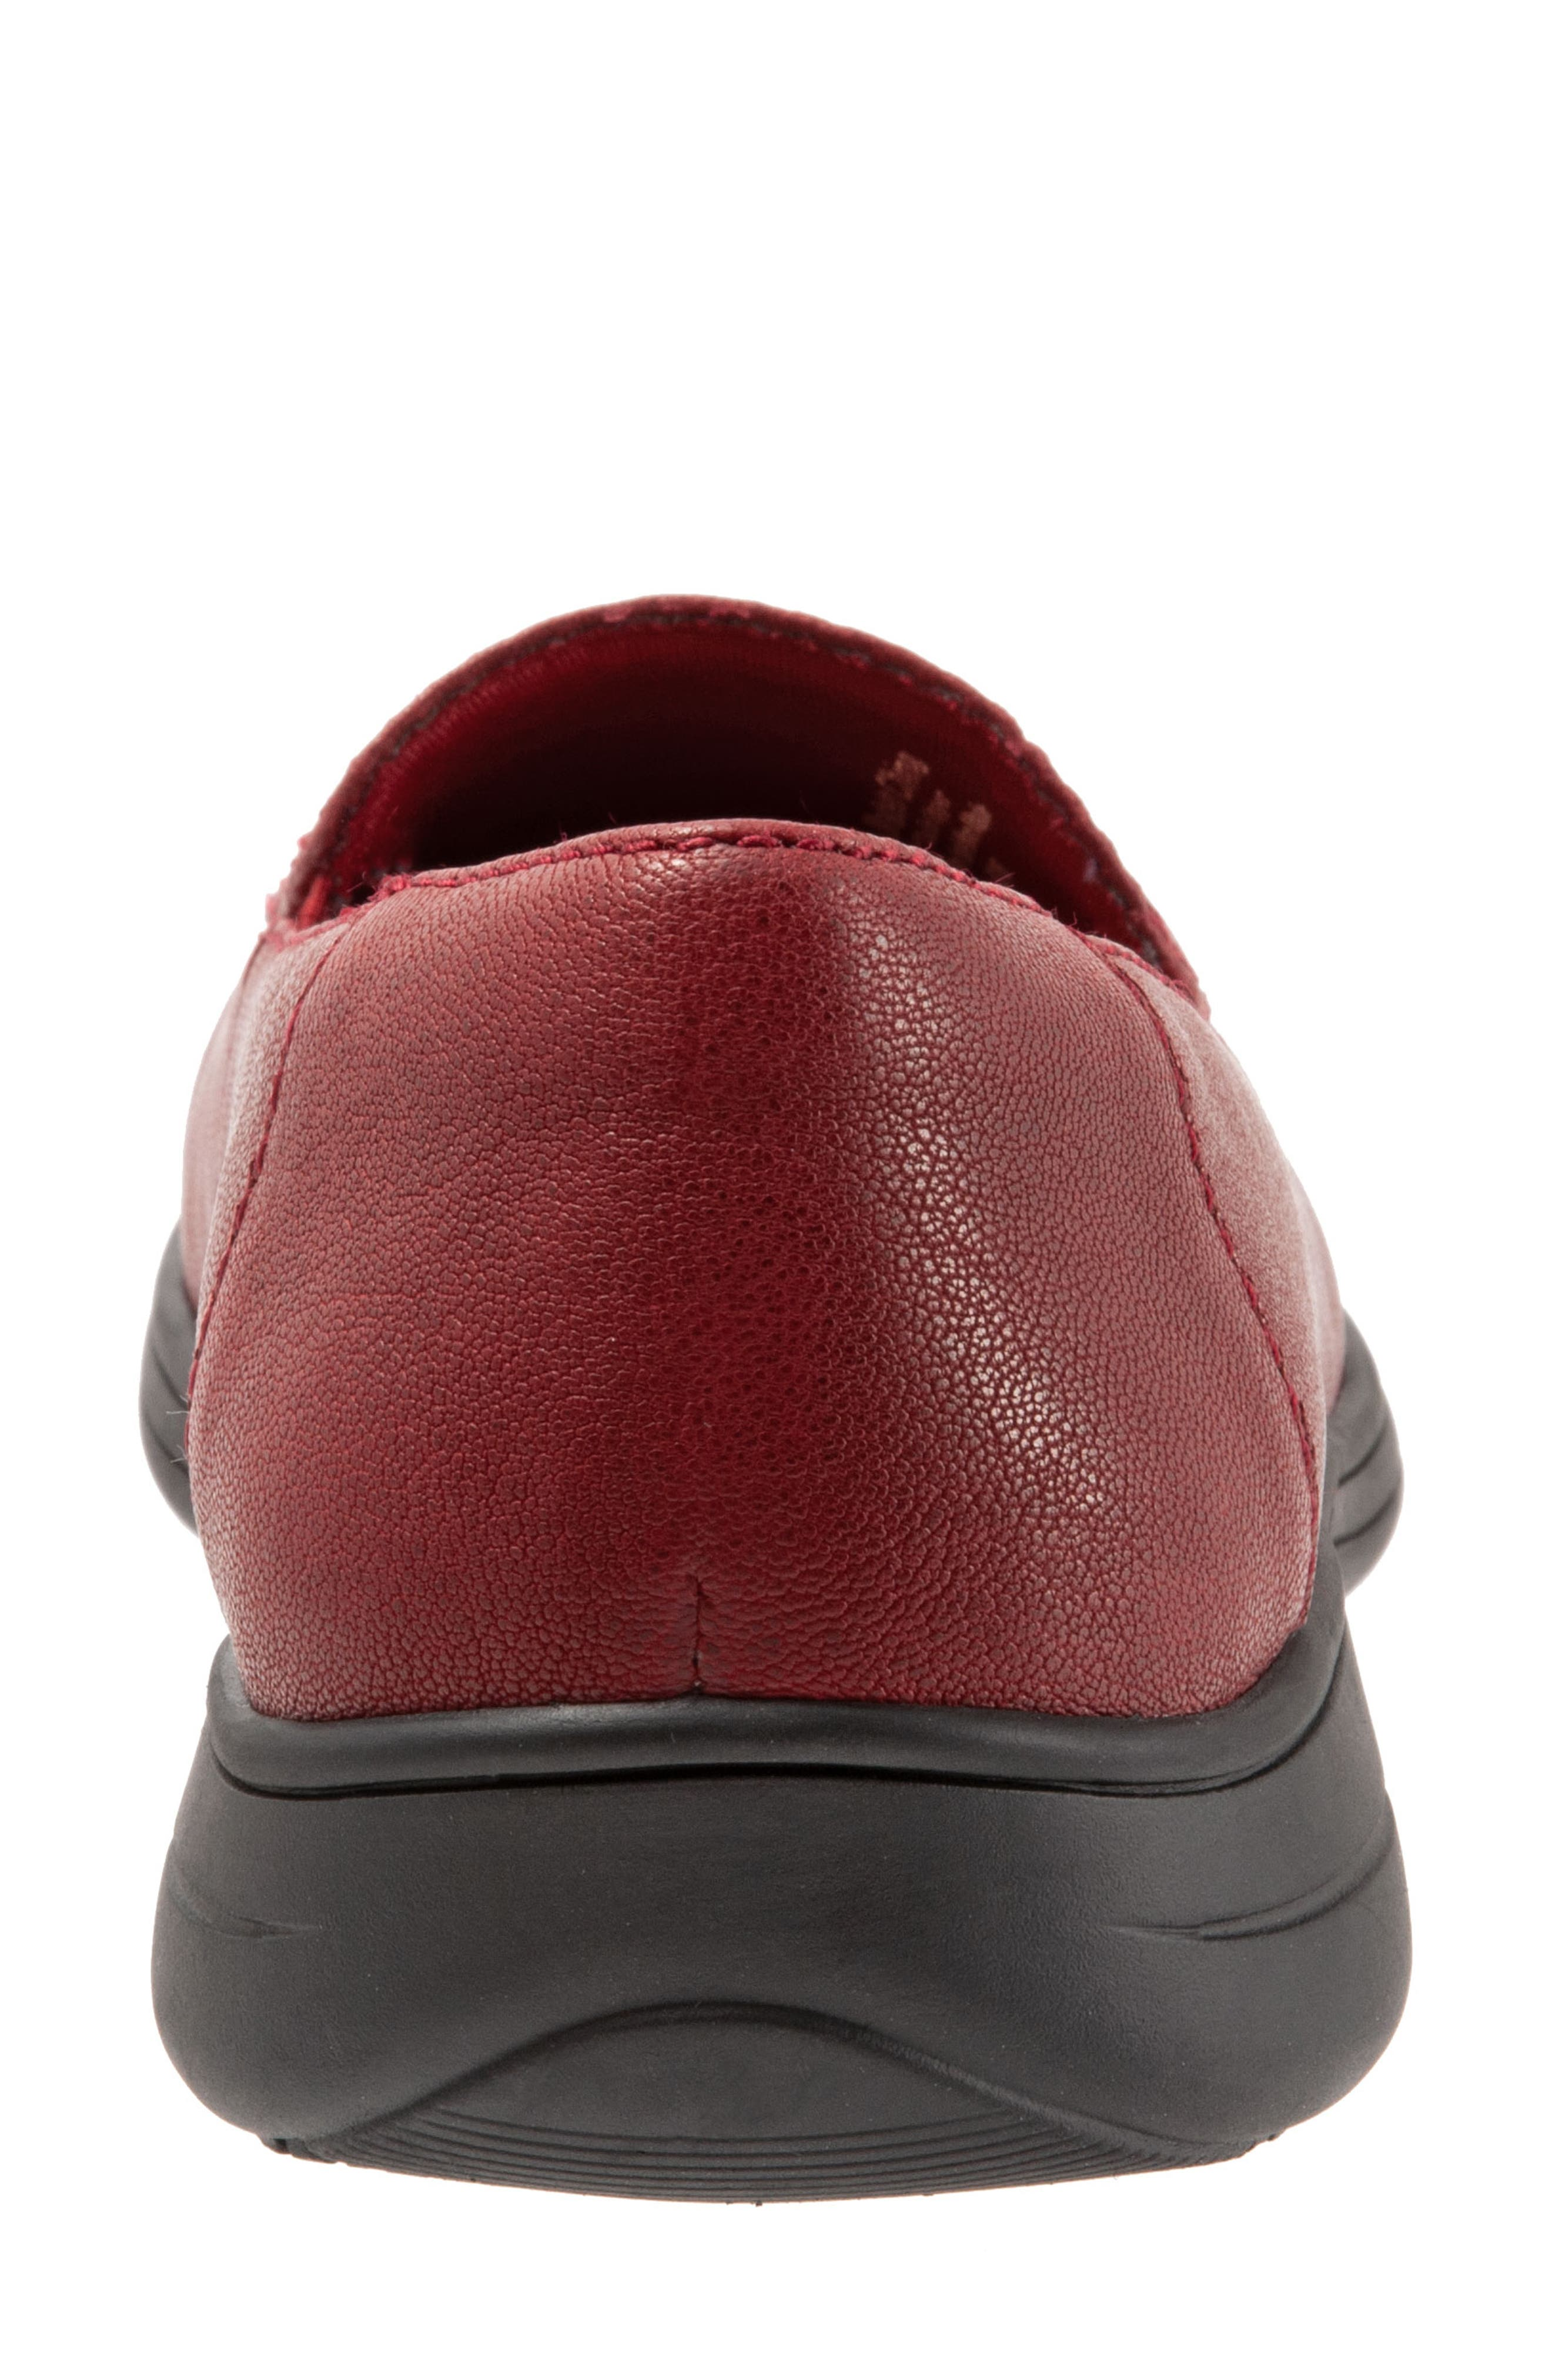 Jacob Loafer,                             Alternate thumbnail 7, color,                             DARK RED LEATHER